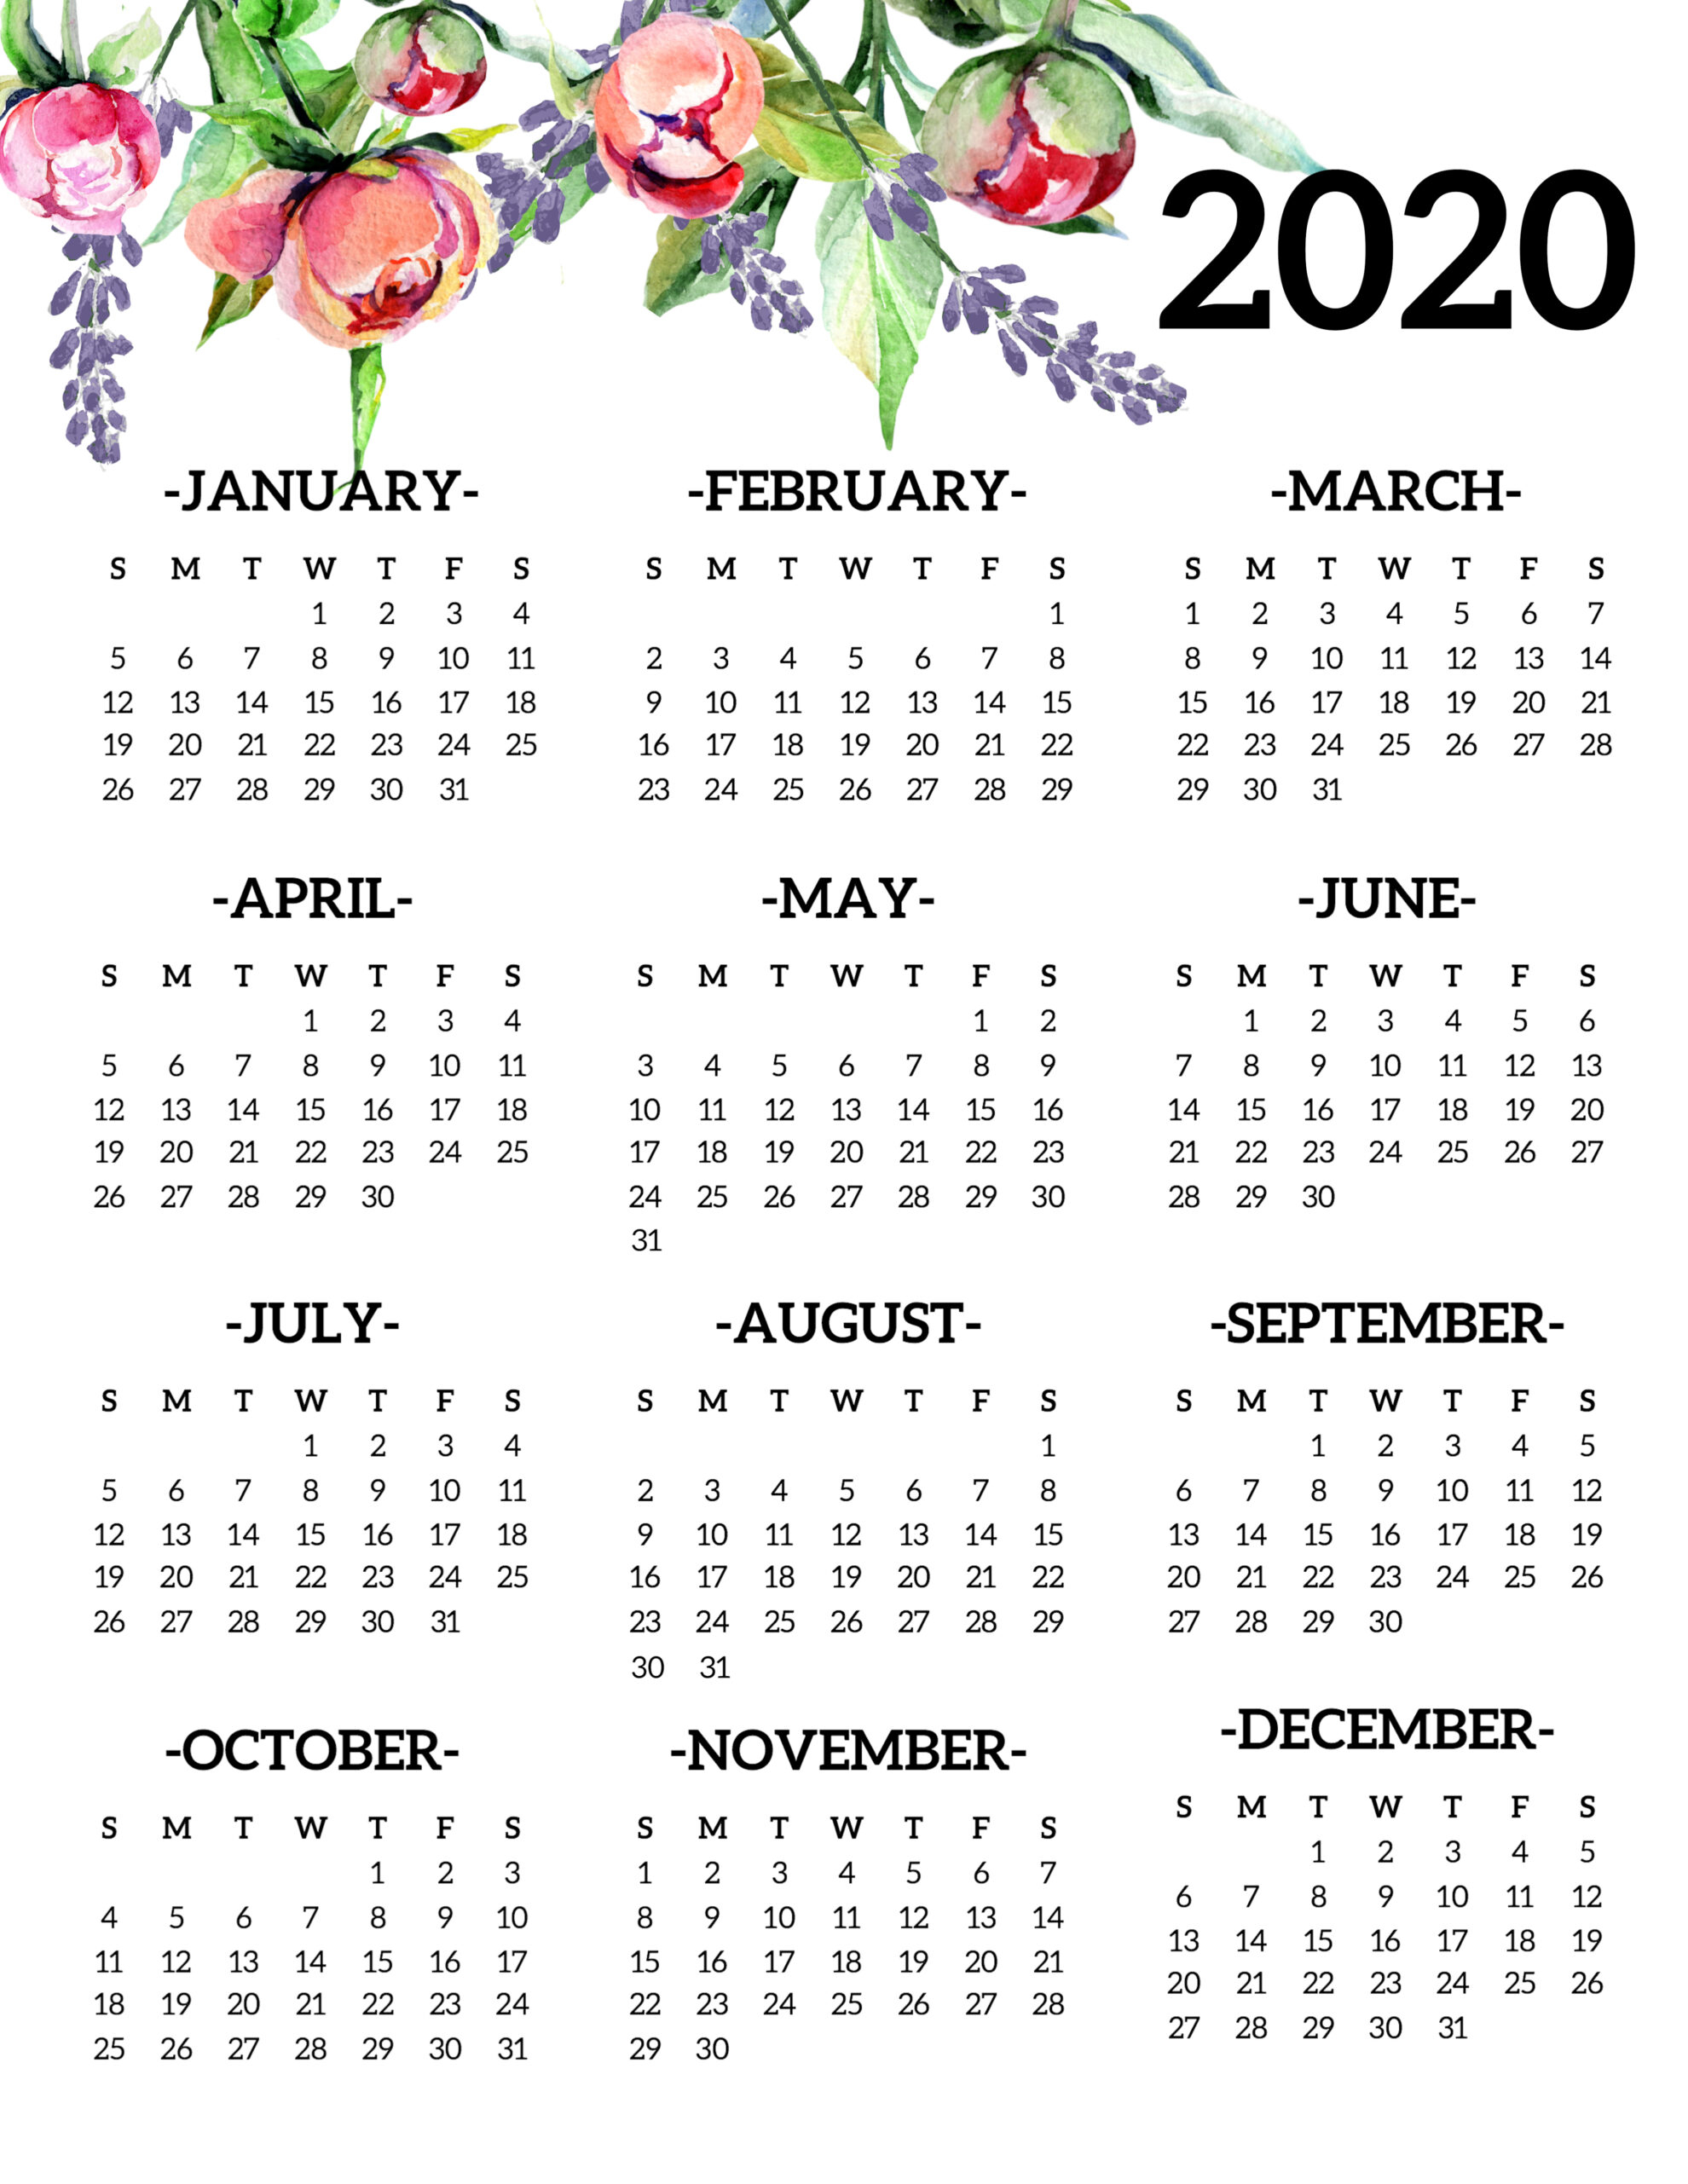 Free Printable 2020 Calendar Yearly One Page Floral - Paper with 2020 Calendars To Print Without Downloading